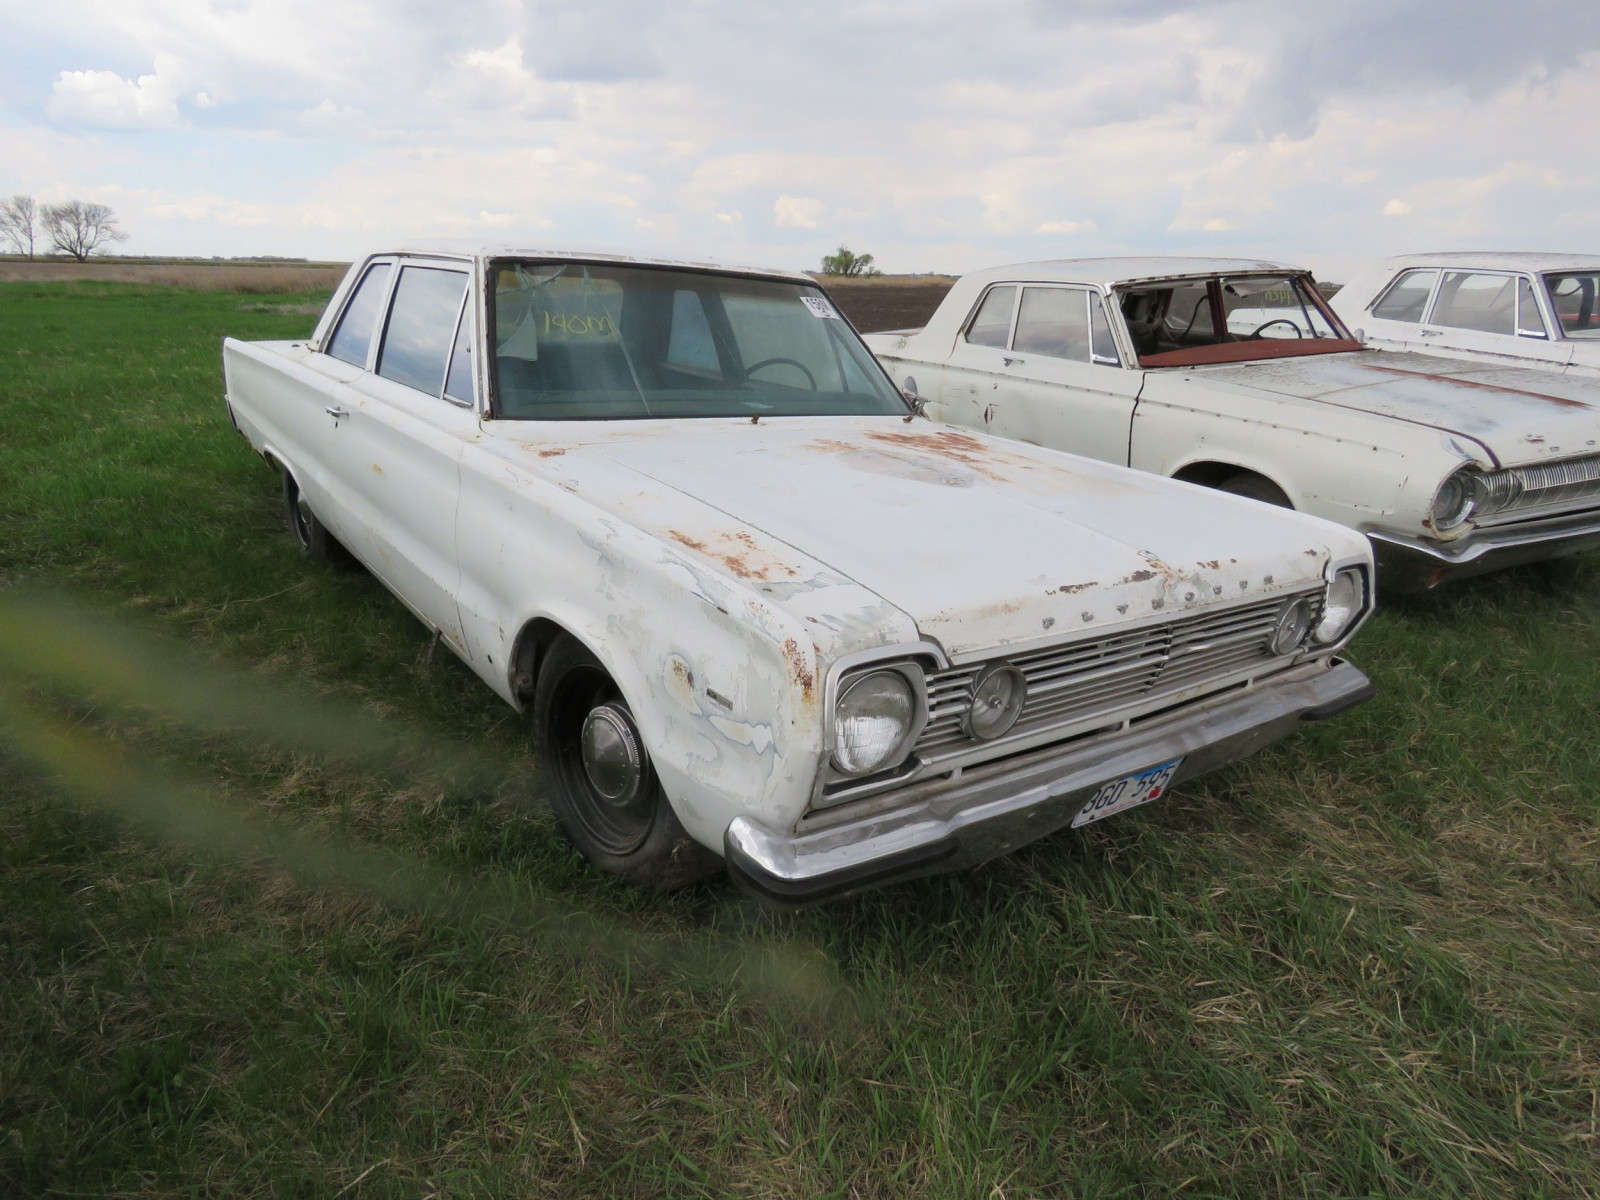 1966 Plymouth Belvedere 2dr post - Image 2